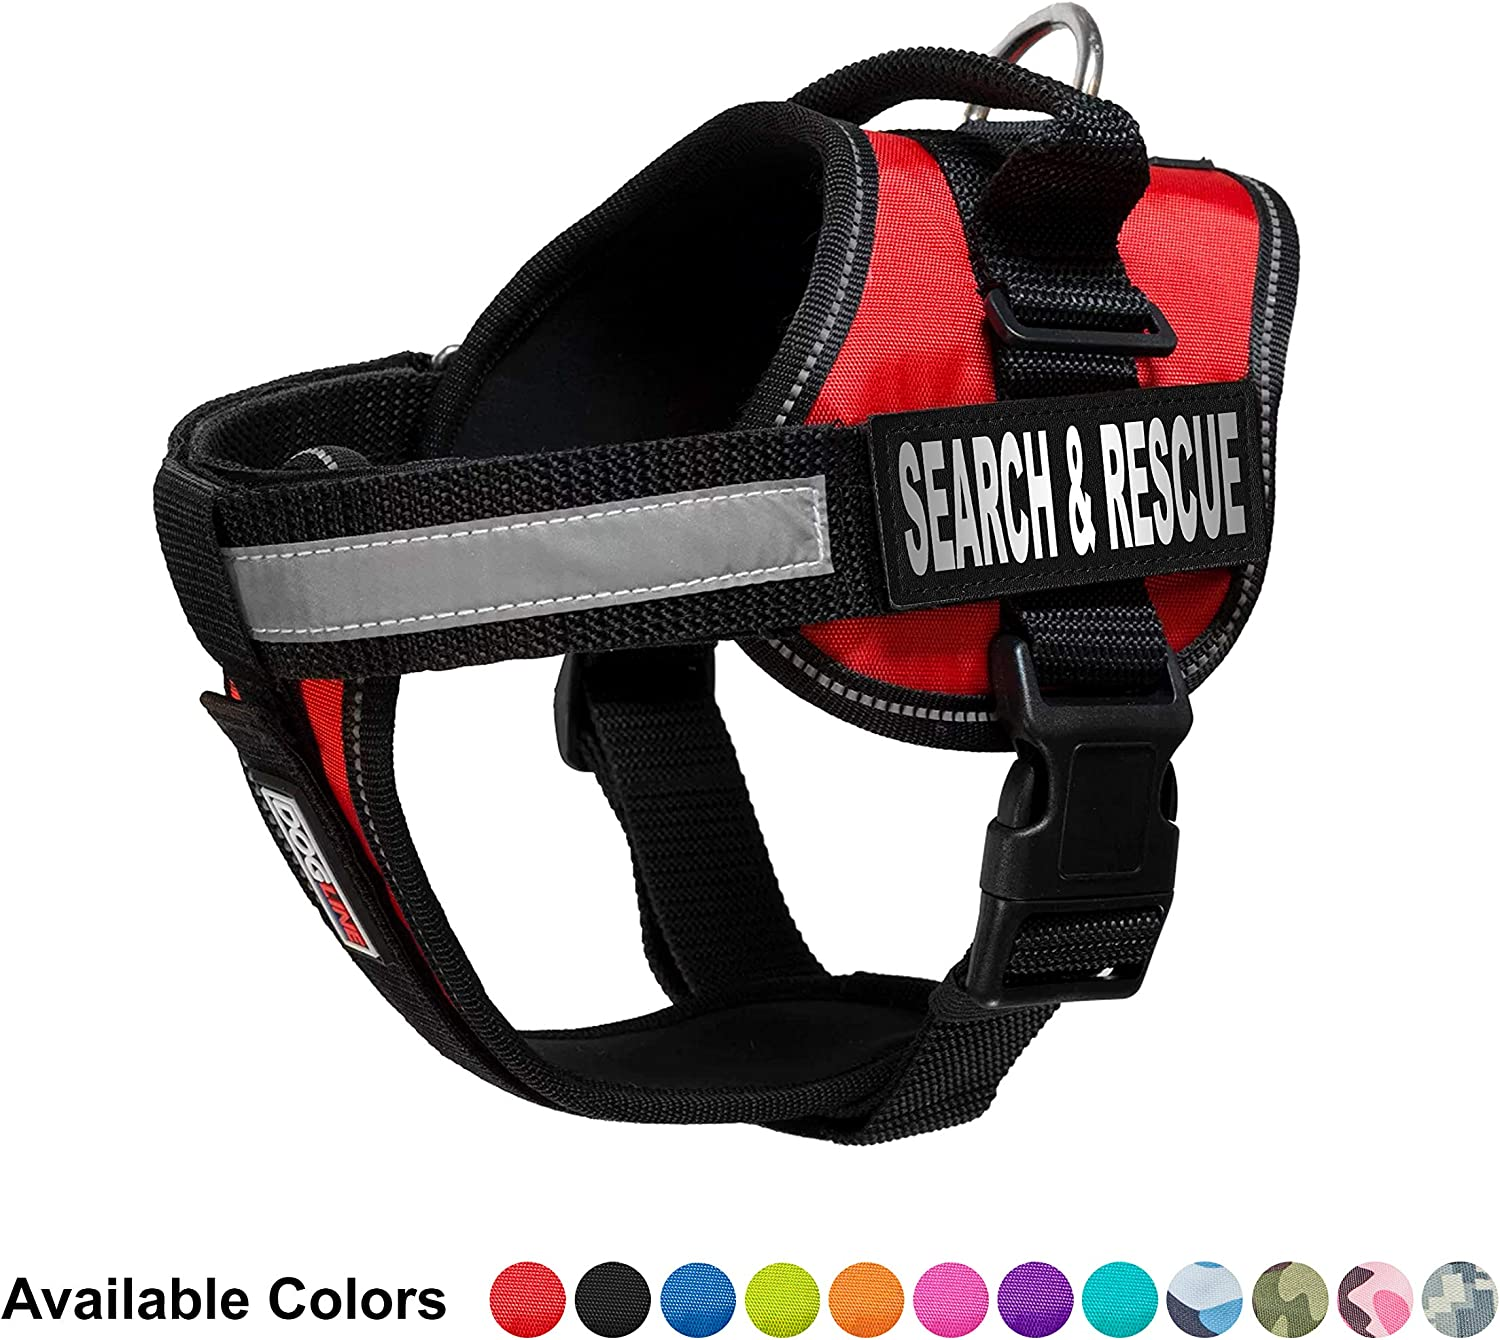 Dogline Unimax MultiPurpose Vest Harness for Dogs and 2 Removable Search and Rescue Patches, Medium, Red